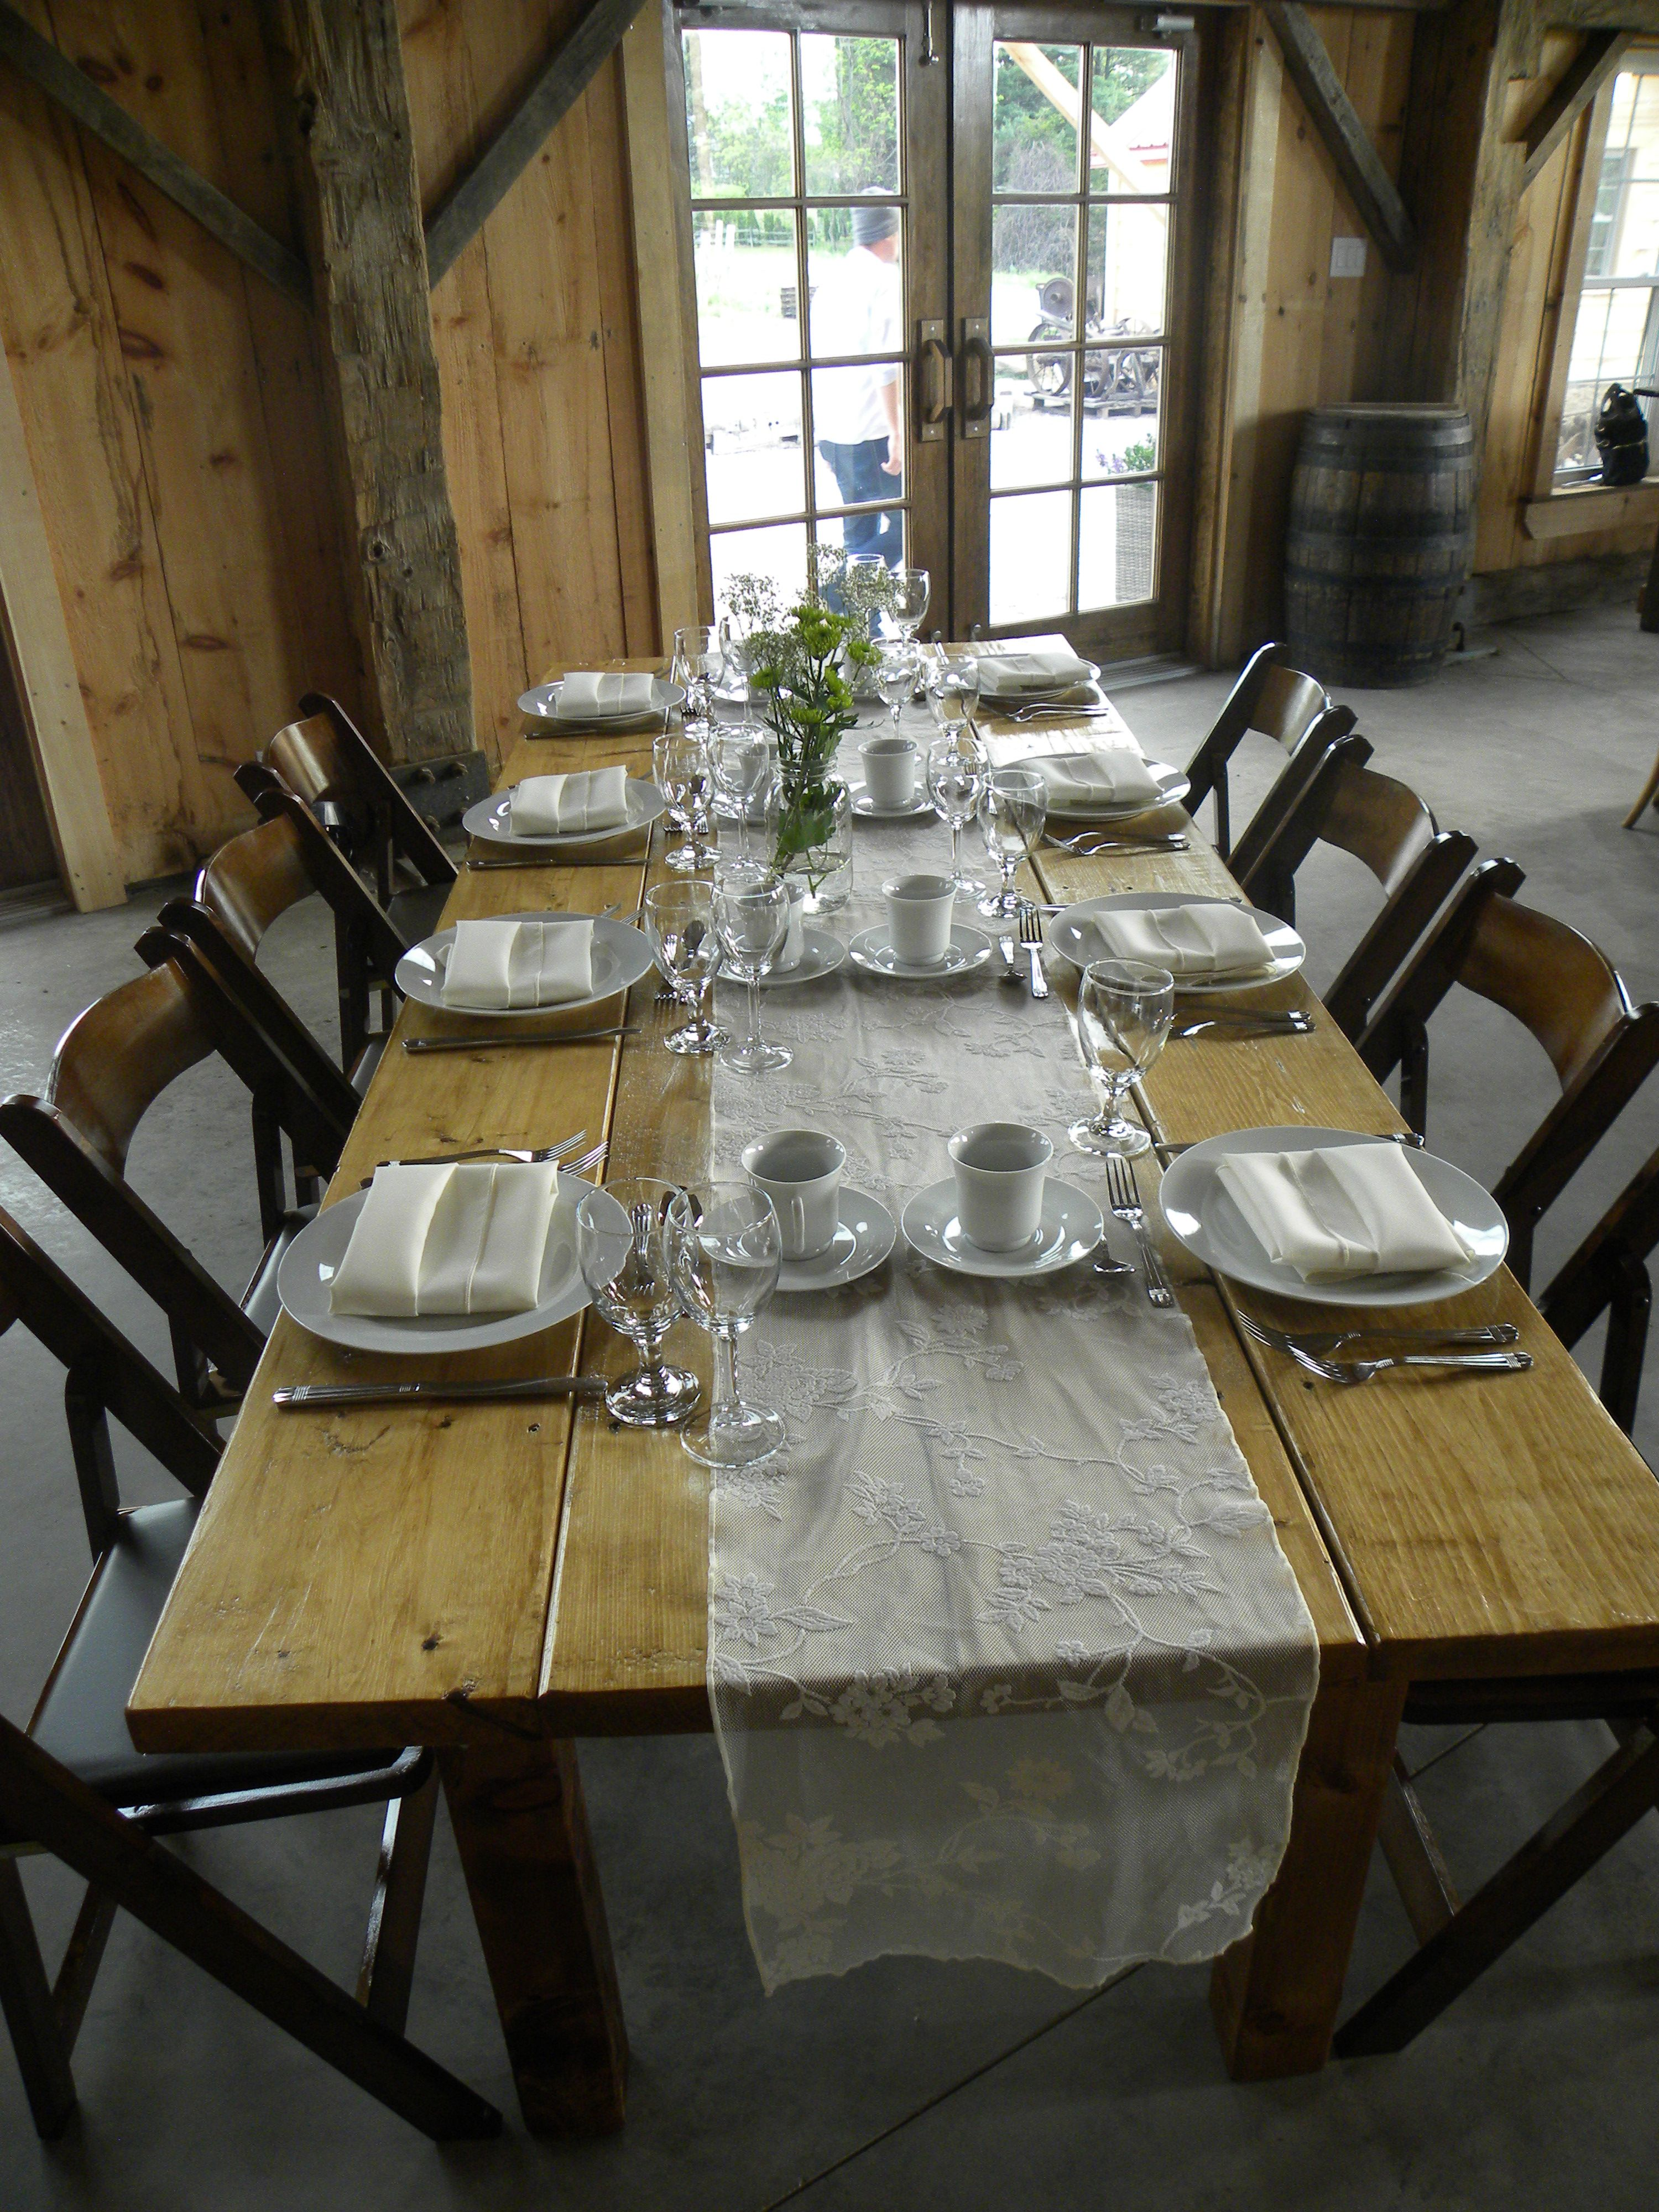 True Harvest Table With Lace Runner And Wooden Folding Chairs